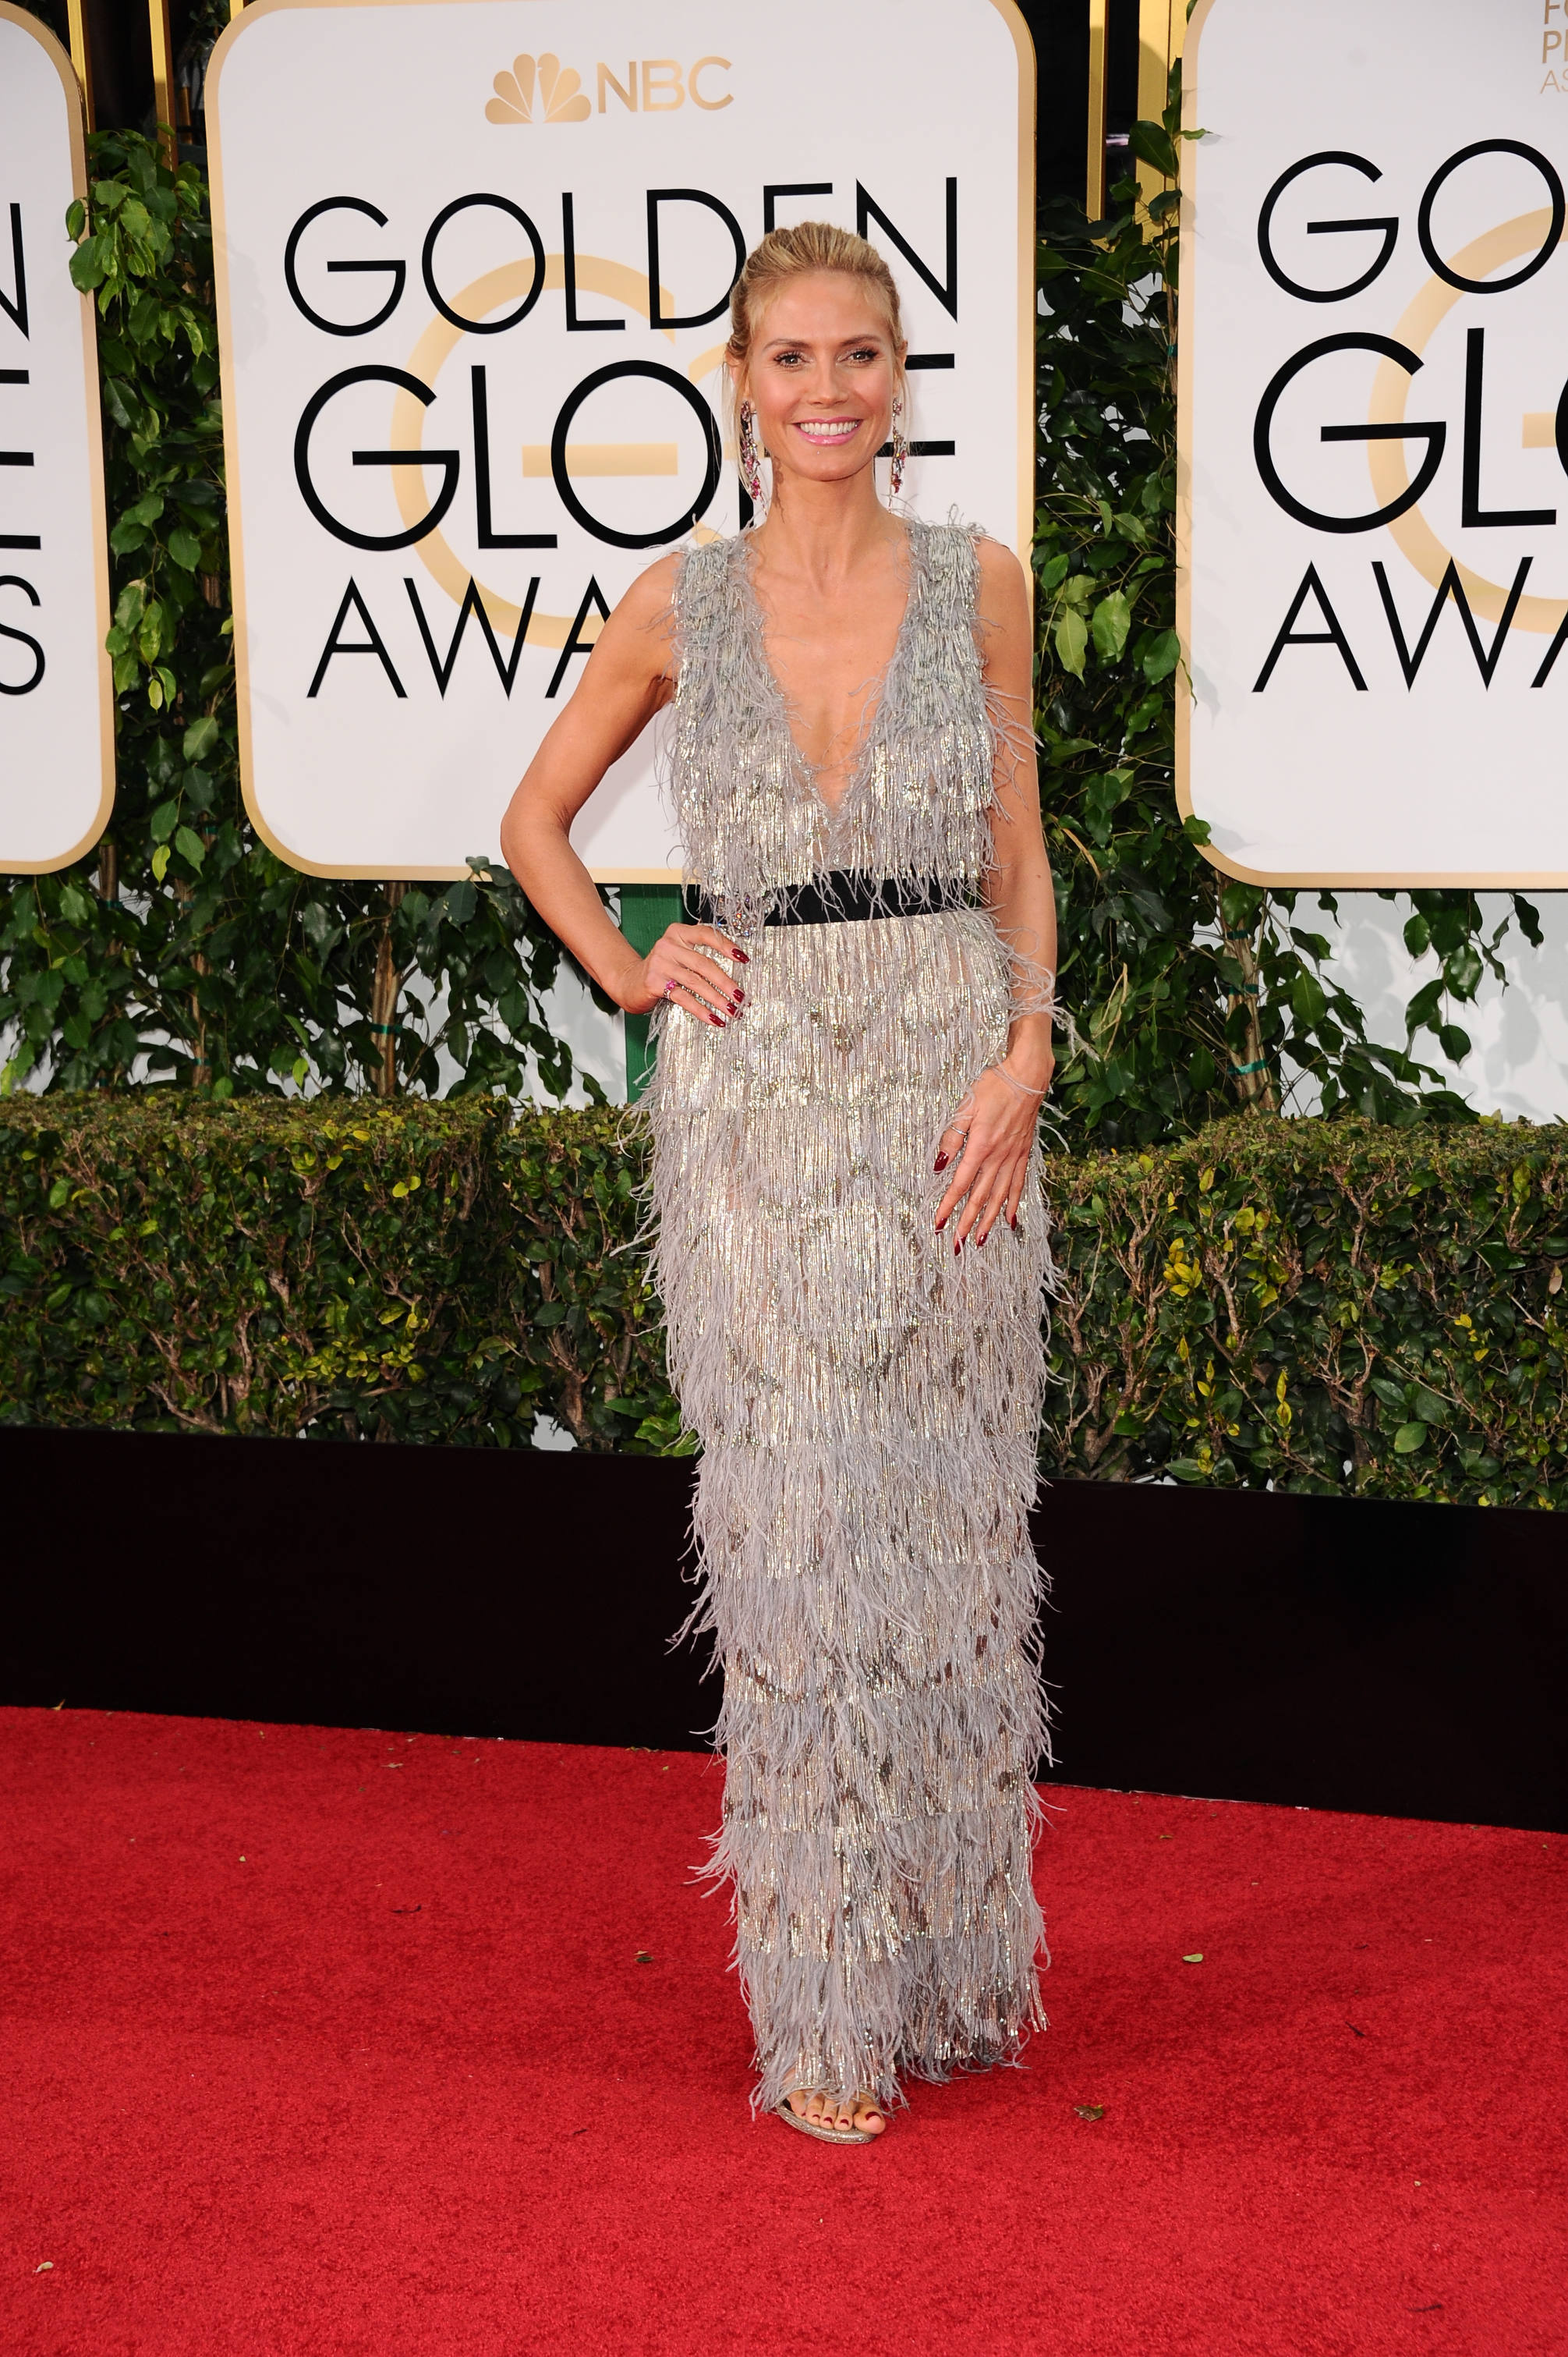 heidi-klum-in-marchesa-at-2016-golden-globe-awards-in-beverly-hills-1